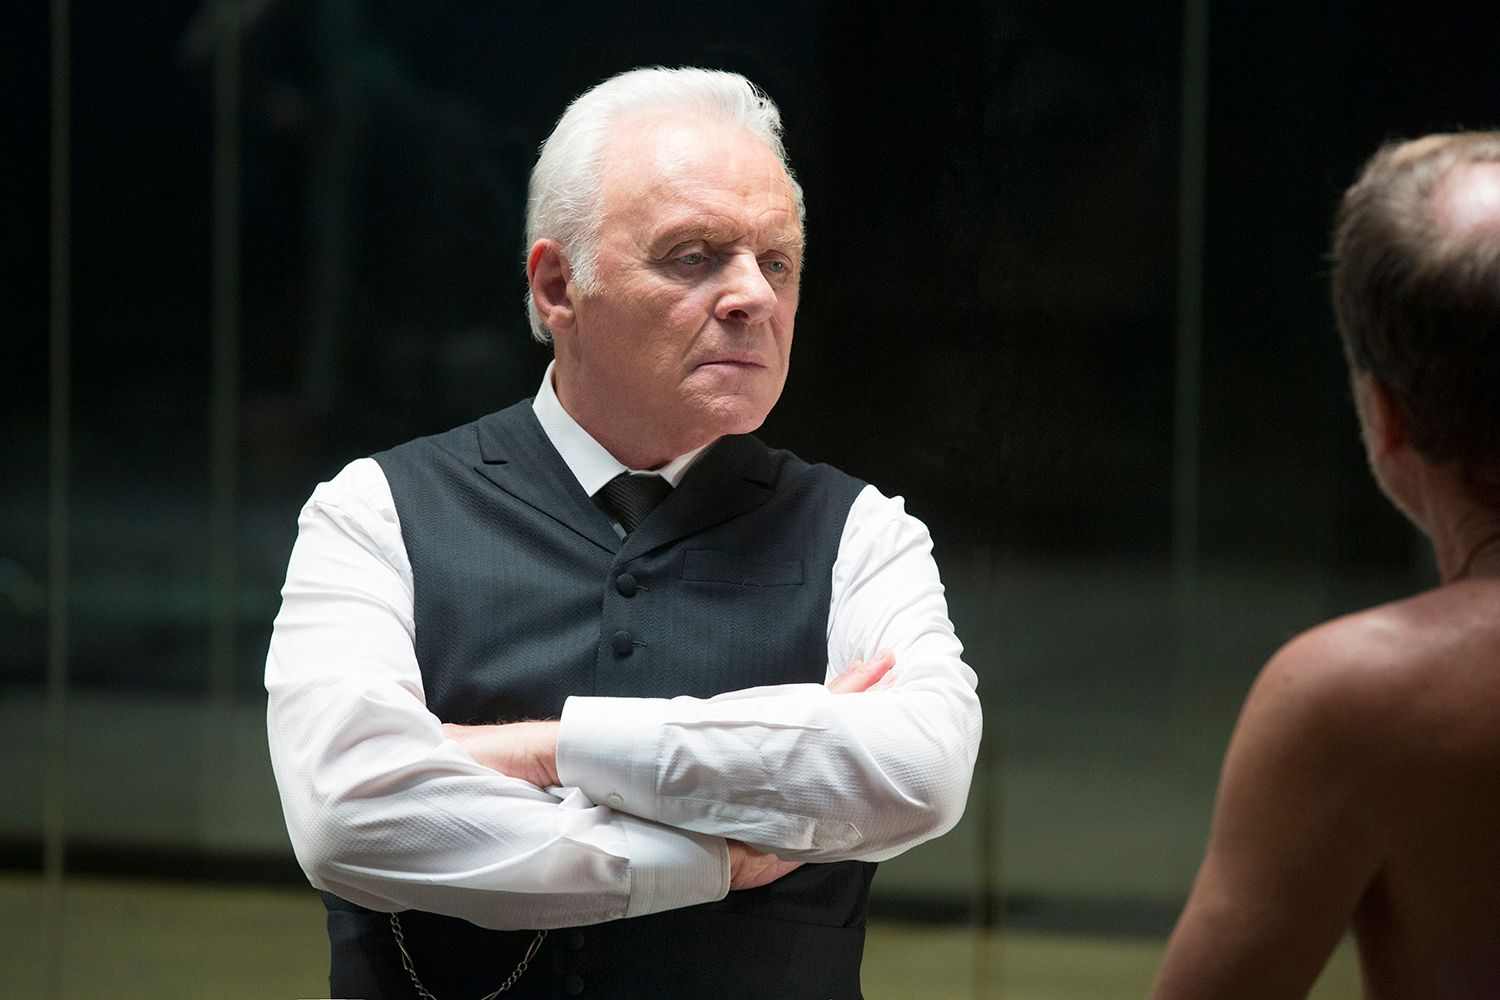 HBO's high-tech western series Westworld will premiere on October 2nd